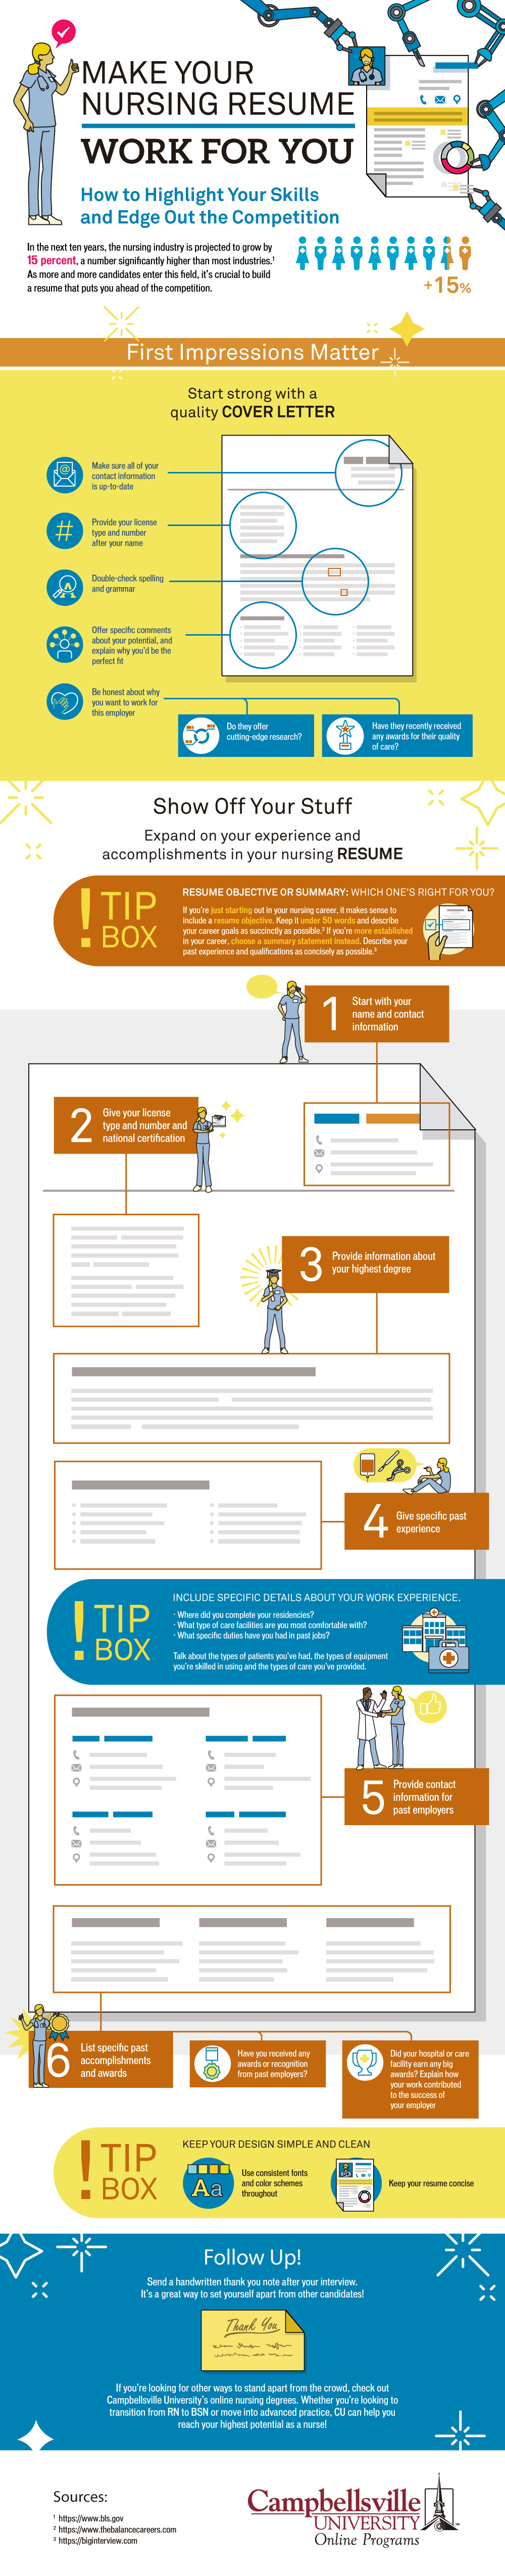 Illustrated infographic detailing the best practices for building an exceptional nursing resume.